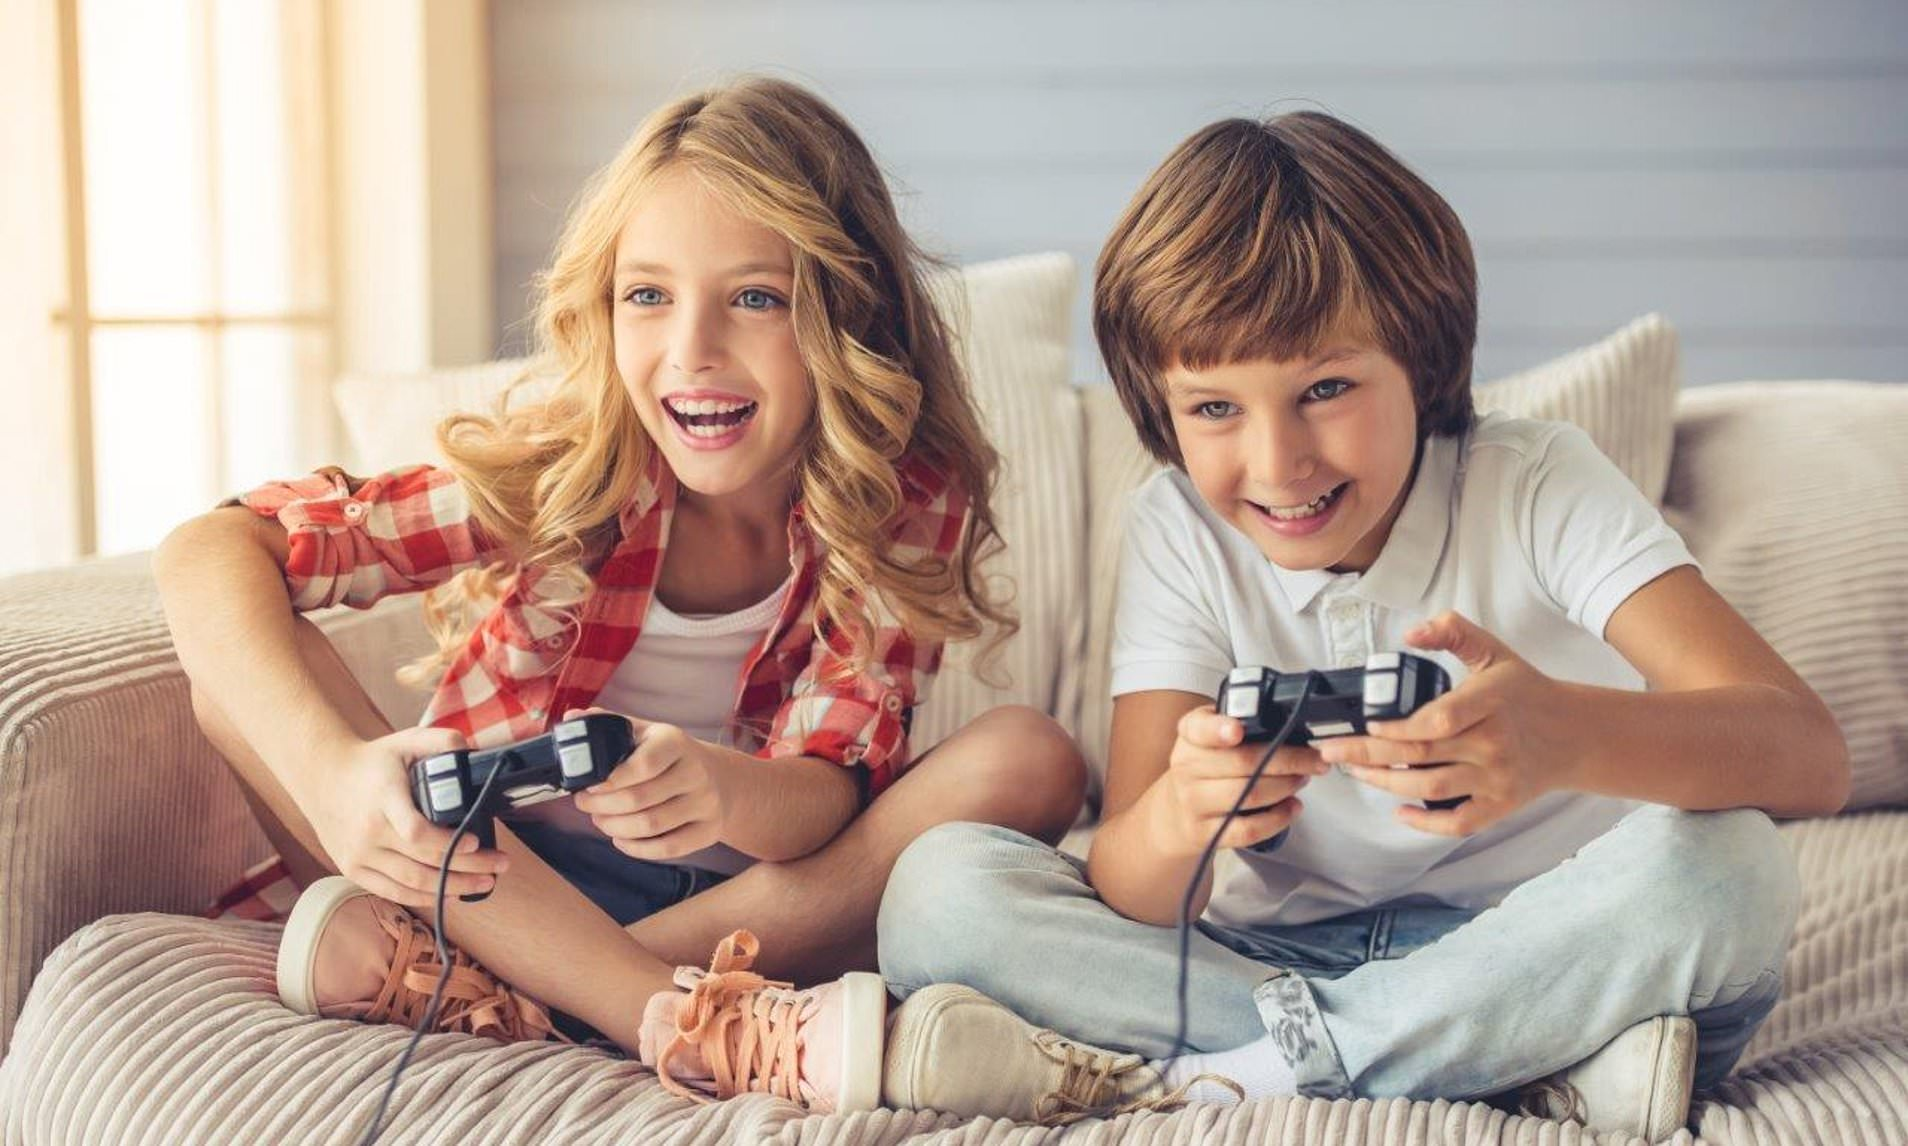 8 Best Ps4 Games For Your Kids in 2019